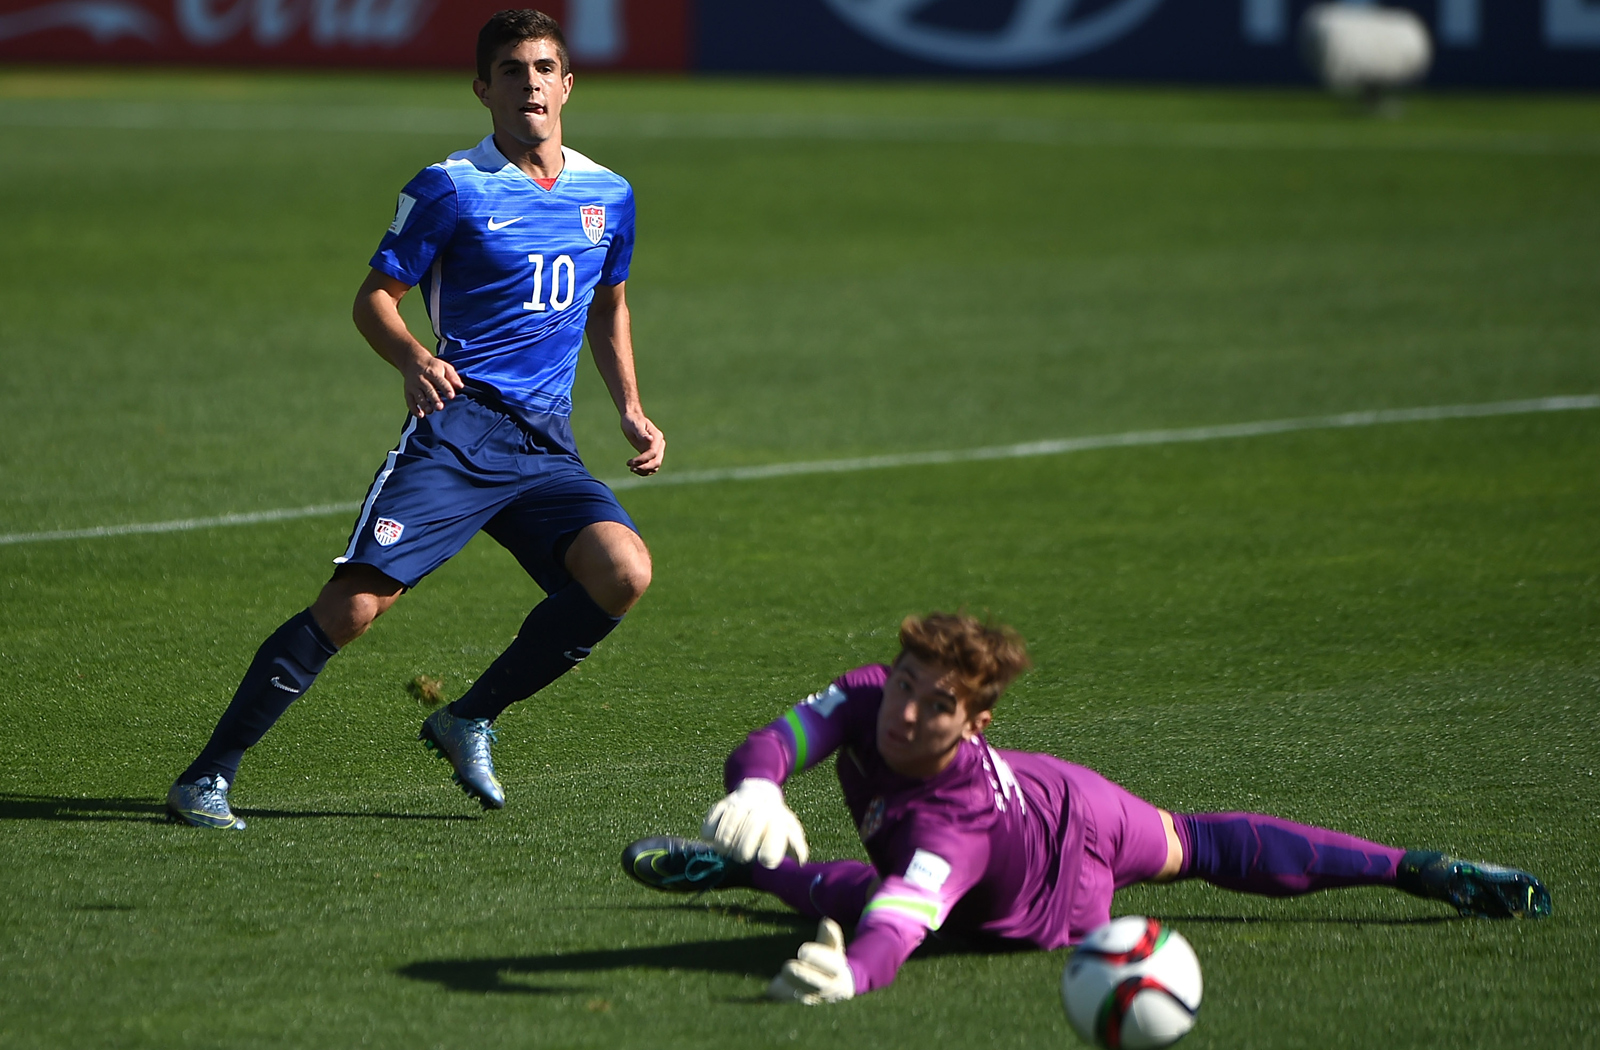 USA U-17 midfielder Christian Pulisic watches his opening goal find the back of the net in the Americans' 2-2 draw with Croatia at the World Cup. The U.S. led 2-0 on Pulisic's goal and assist to Brandon Vazquez, but the European side battled back.